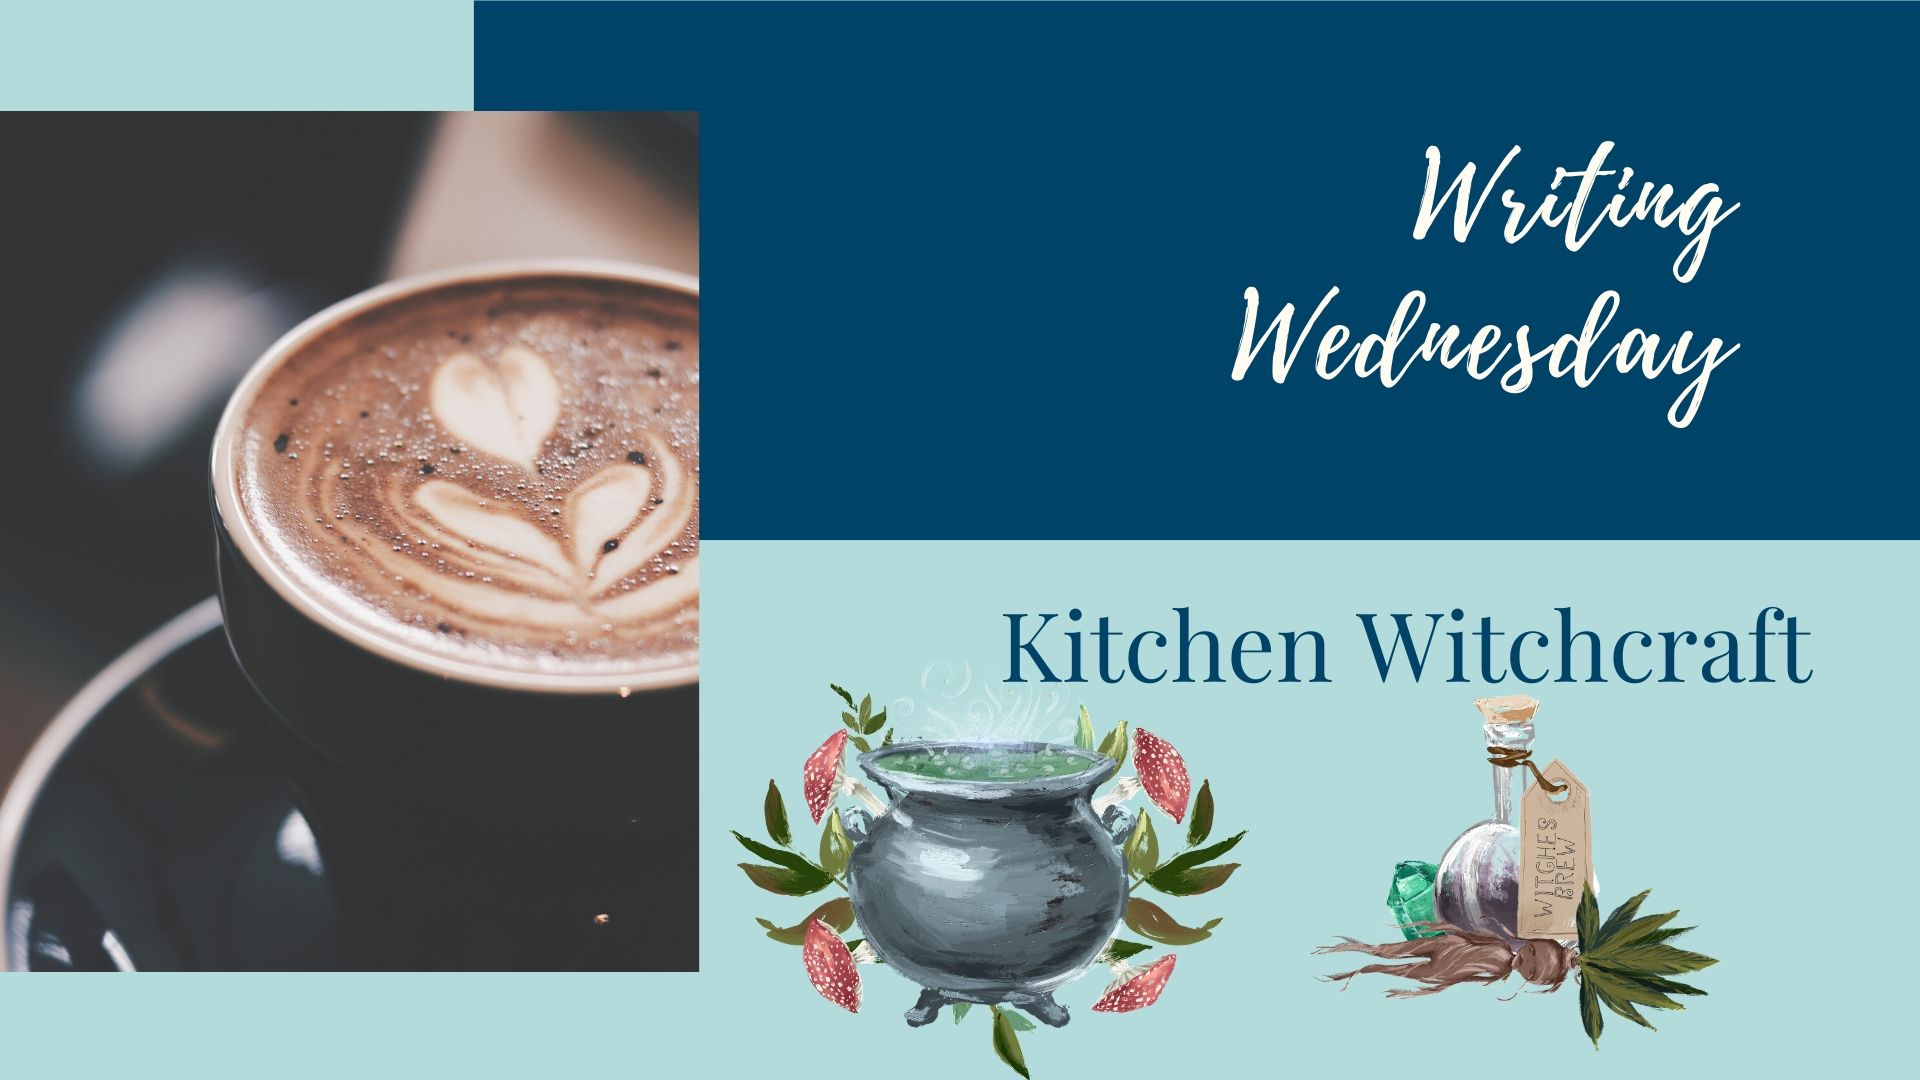 Writing Wednesday: Kitchen Witchcraft